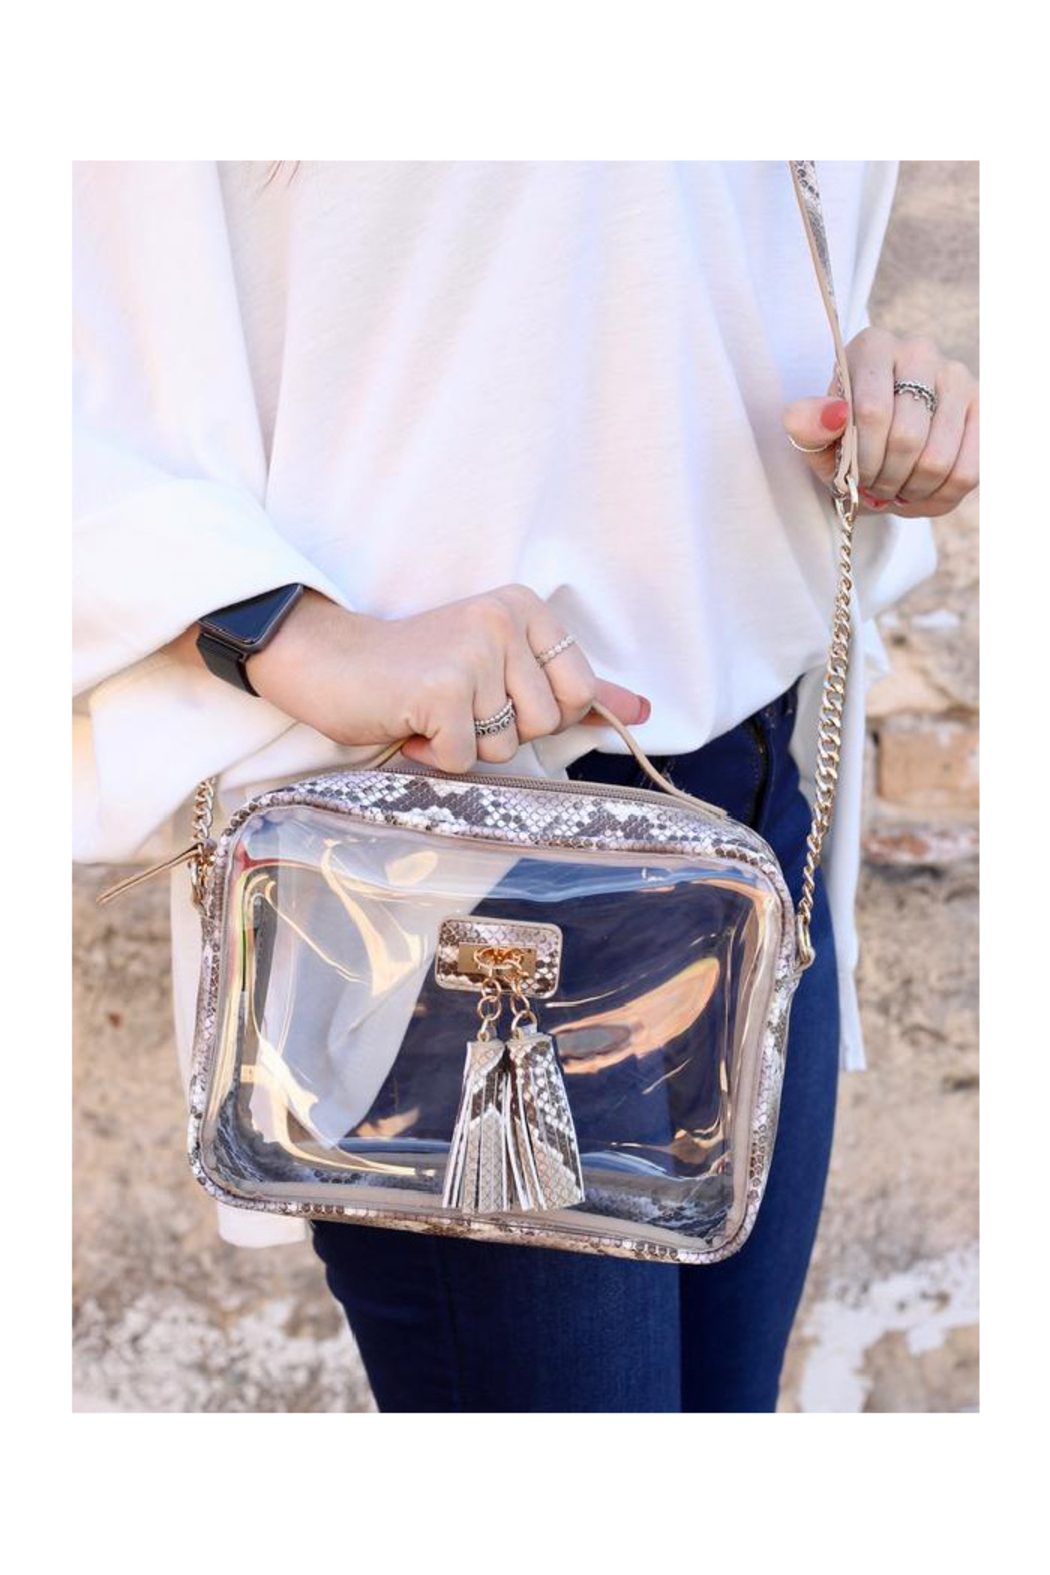 The Birds Nest Tinzley Clear Bag With Tassels-Snake Latte - Main Image